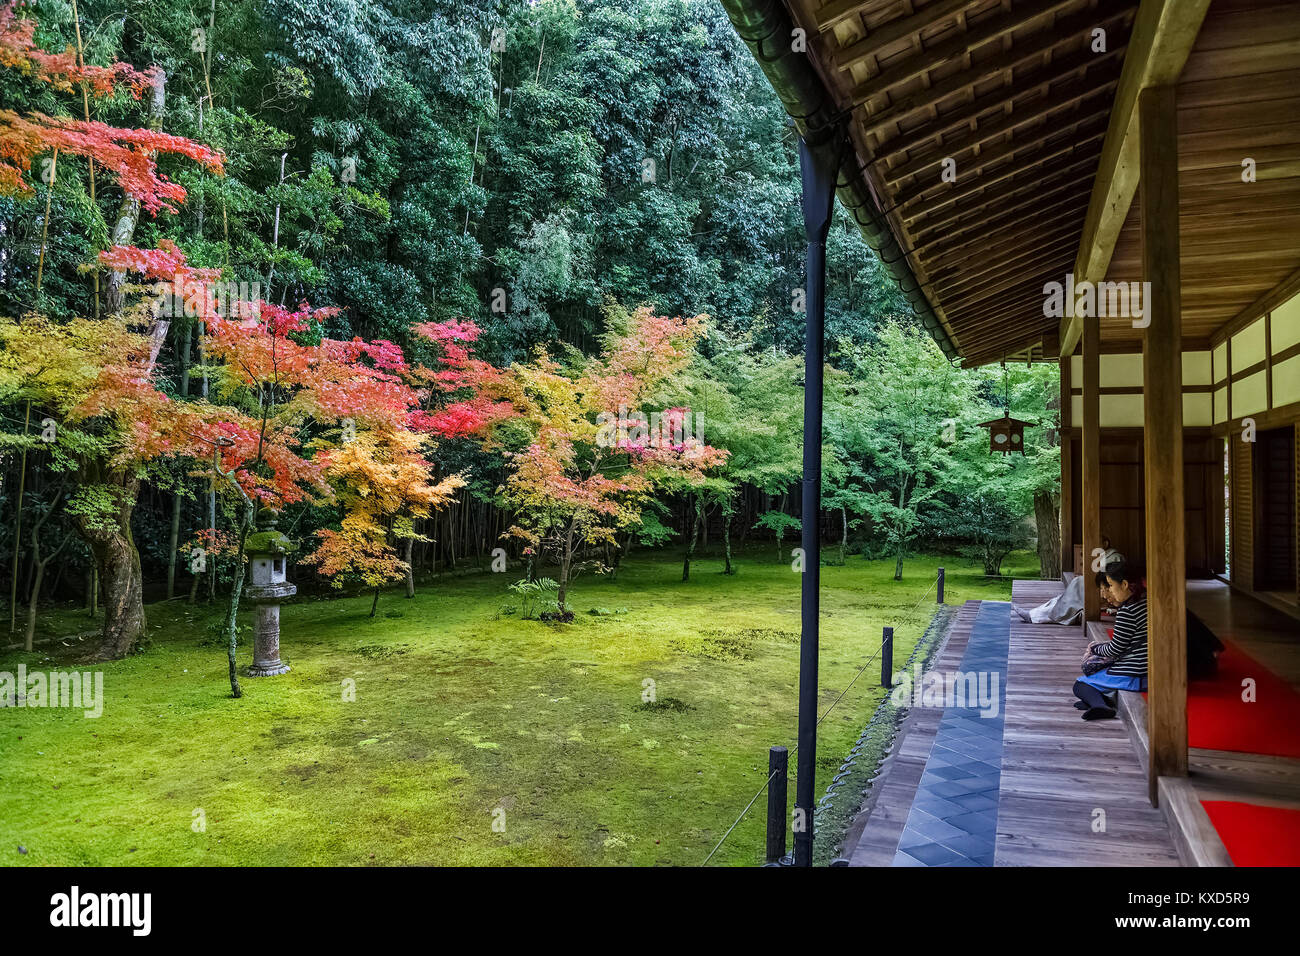 Koto-in Temple in Kyoto, Japan  KYOTO, JAPAN - OCTOBER 22: Koto-in Temple in Kyoto, Japan on October 22, 2014. Unidentified - Stock Image